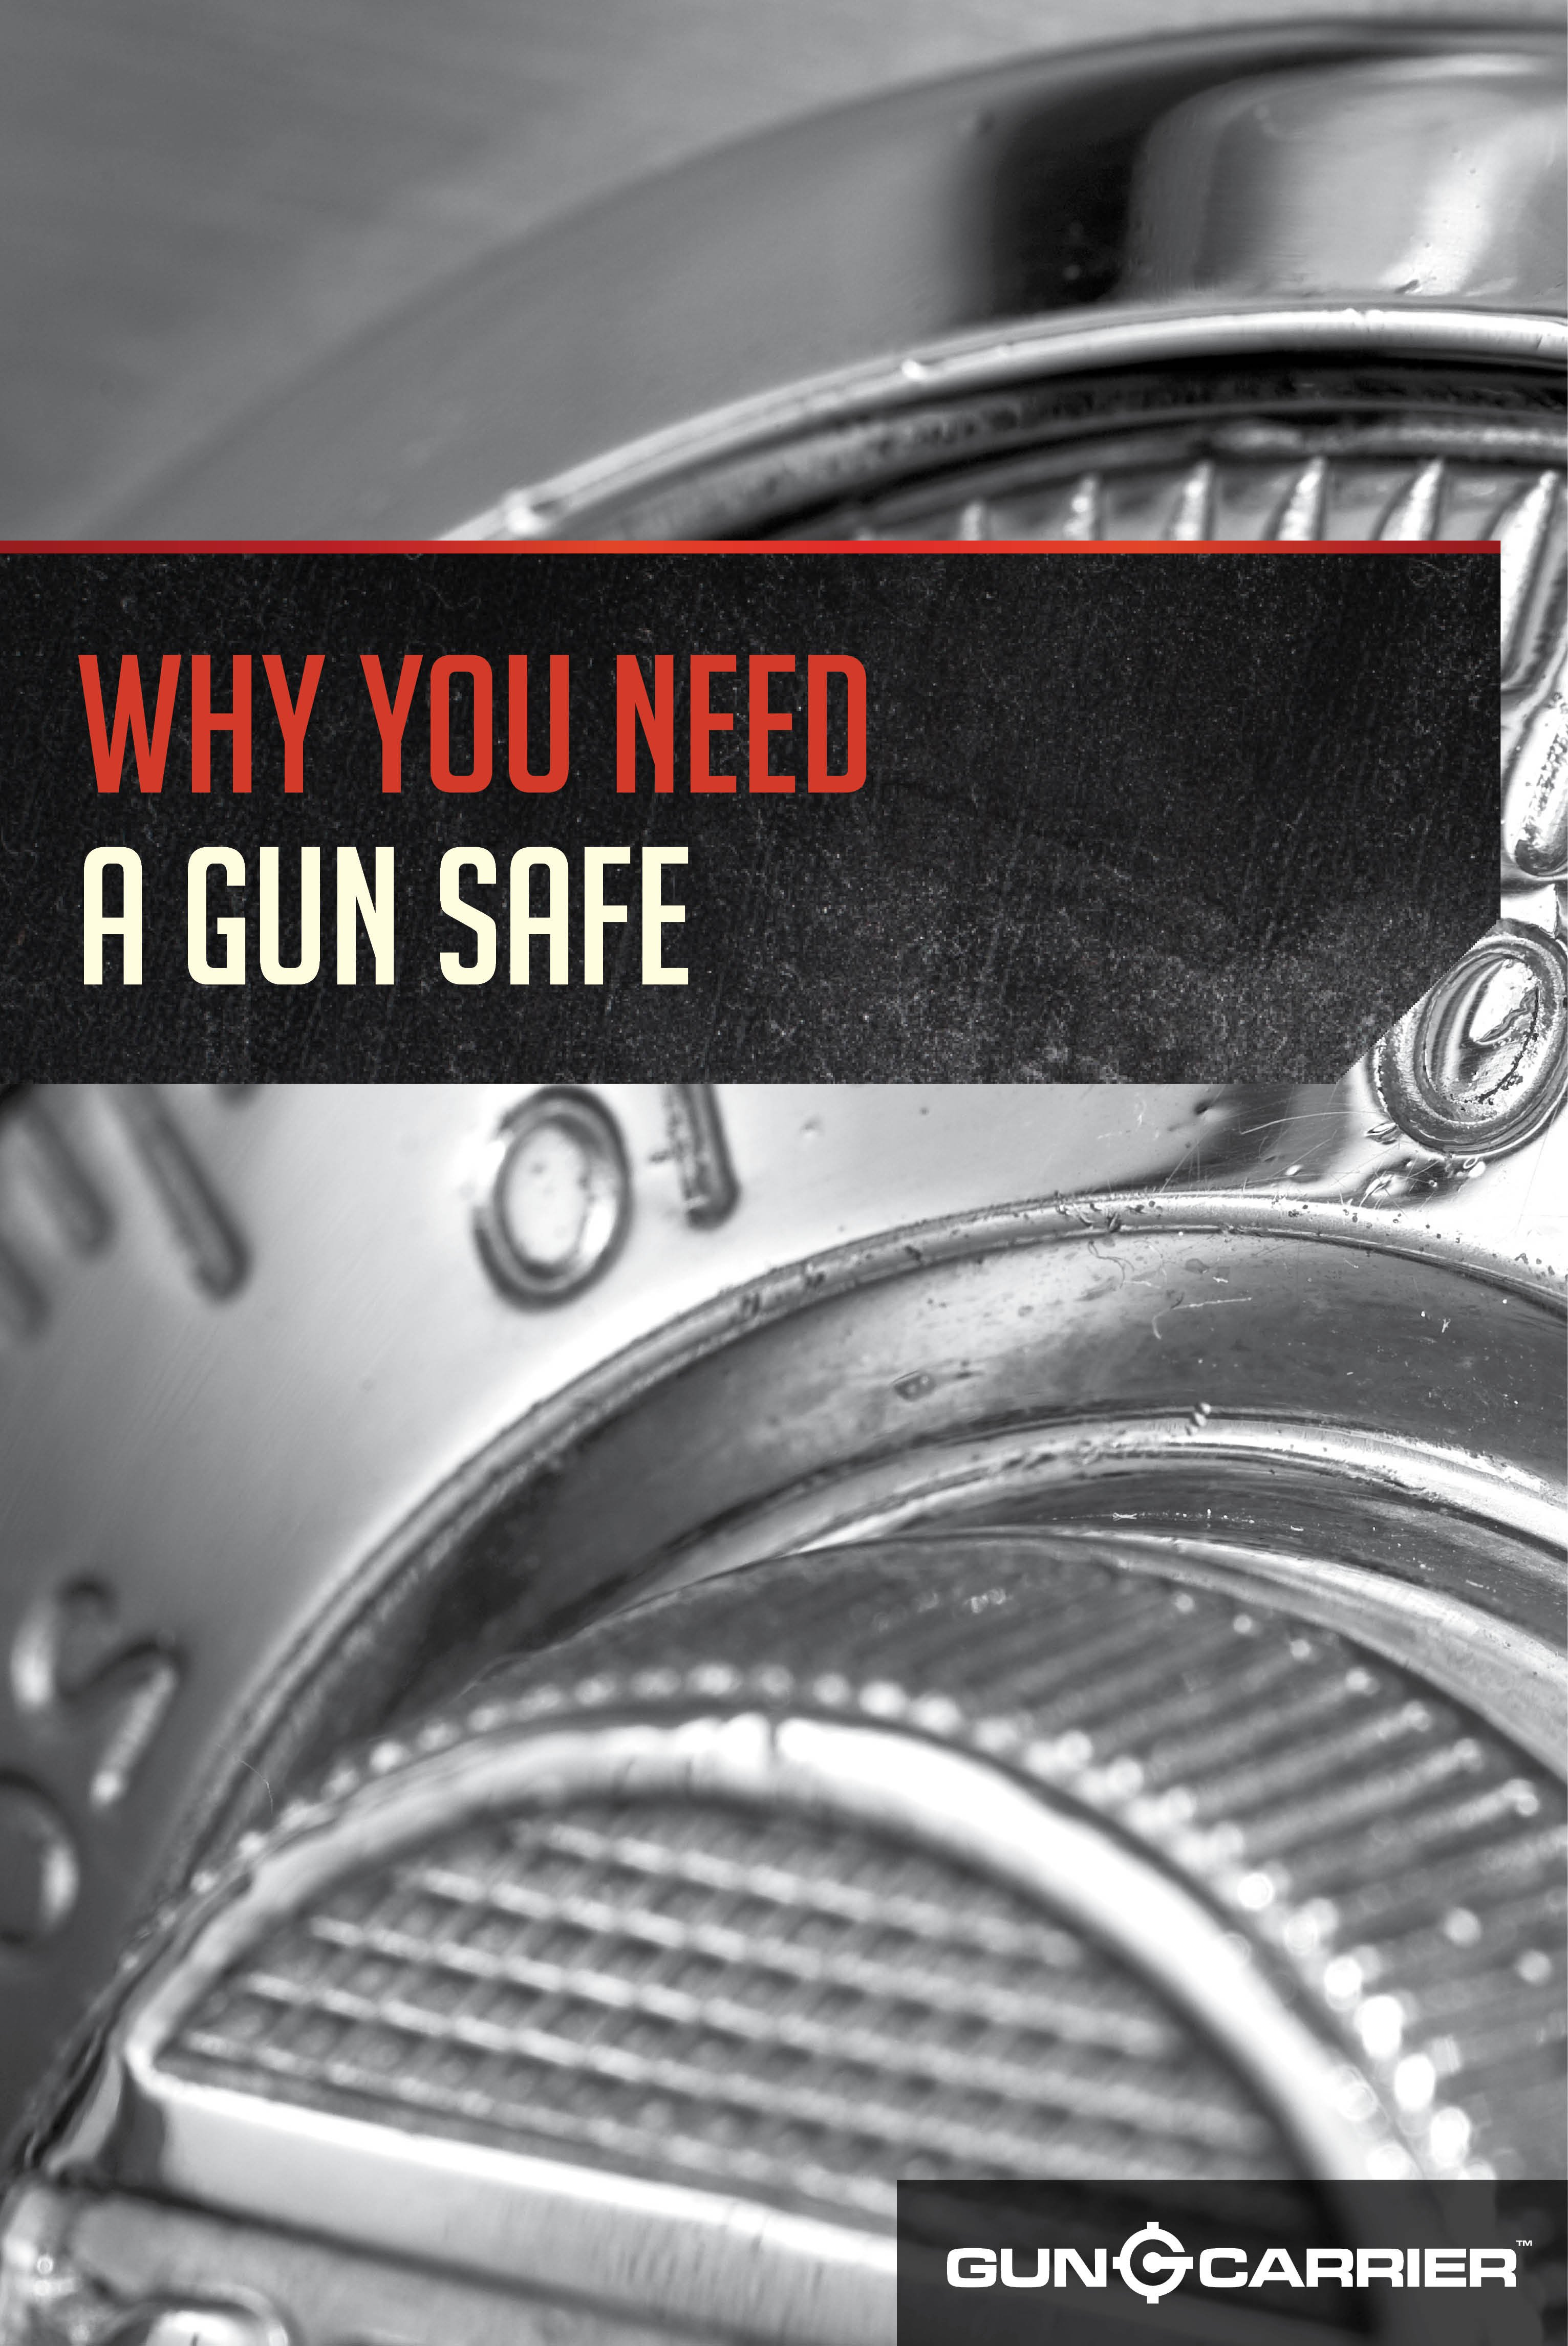 Why You Need a Gun Safe by Gun Carrier at https://guncarrier.com/advantages-gun-safe